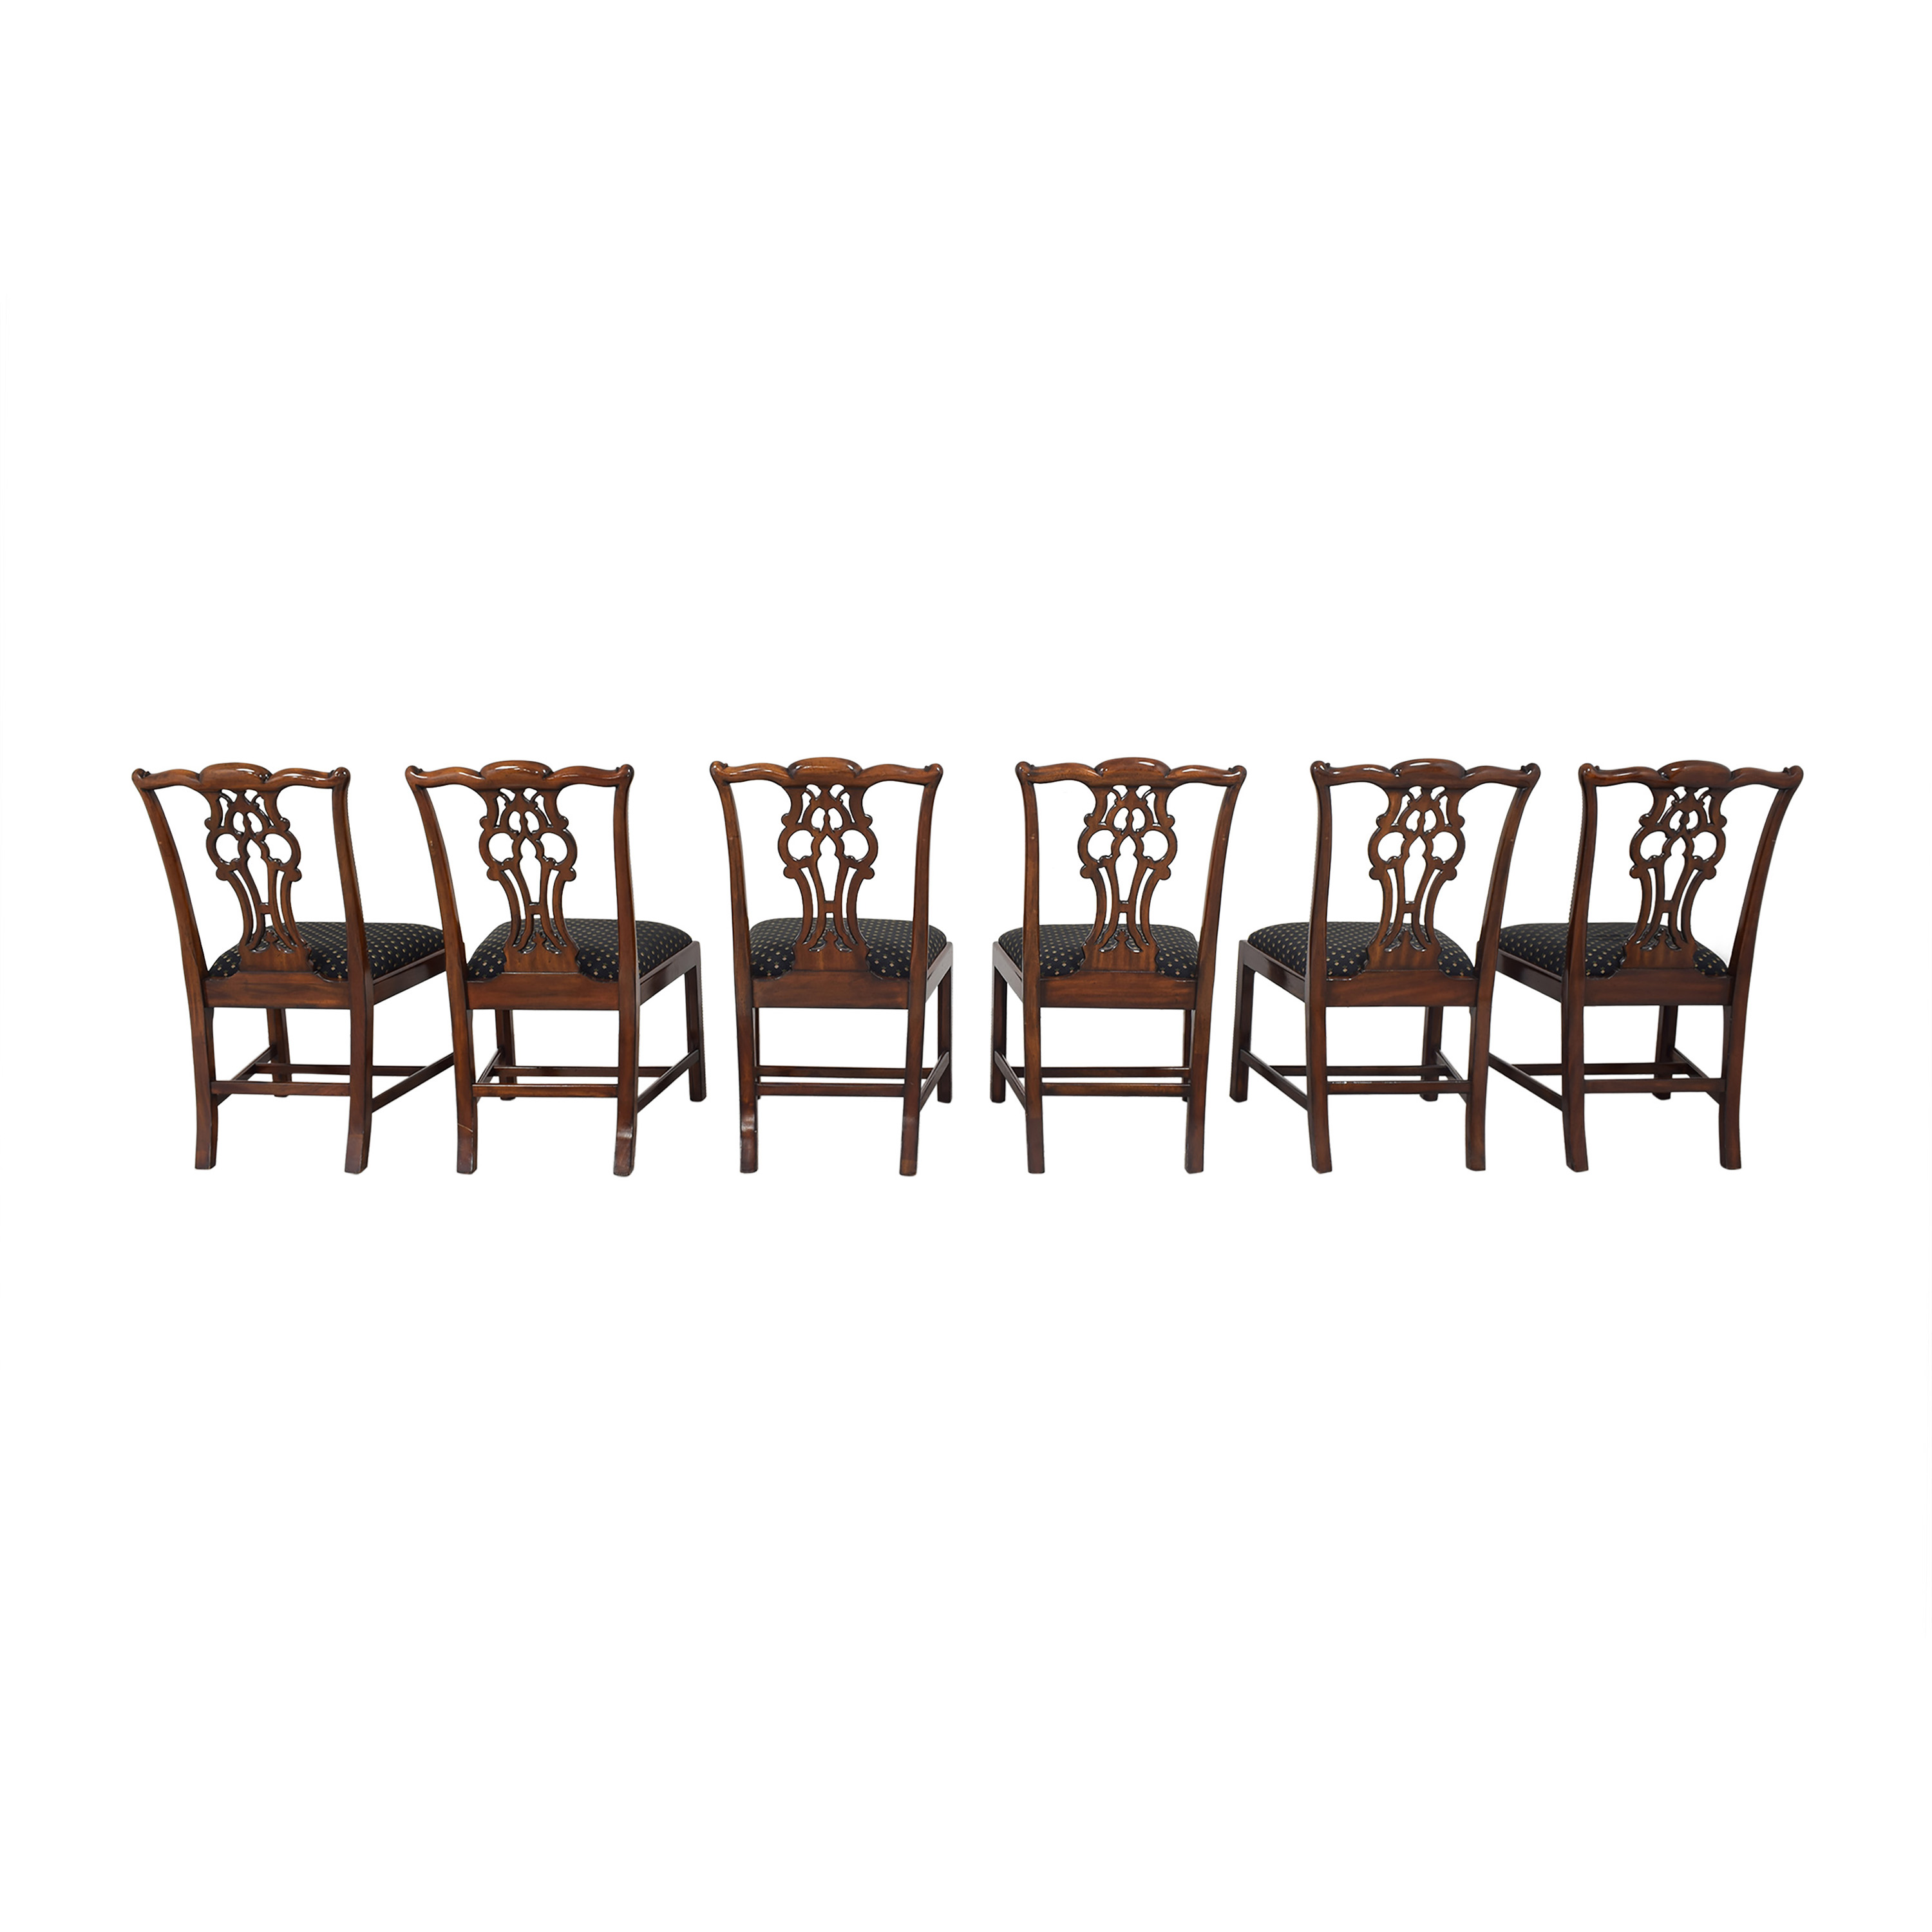 Maitland-Smith Maitland-Smith Chippendale Dining Chairs ct